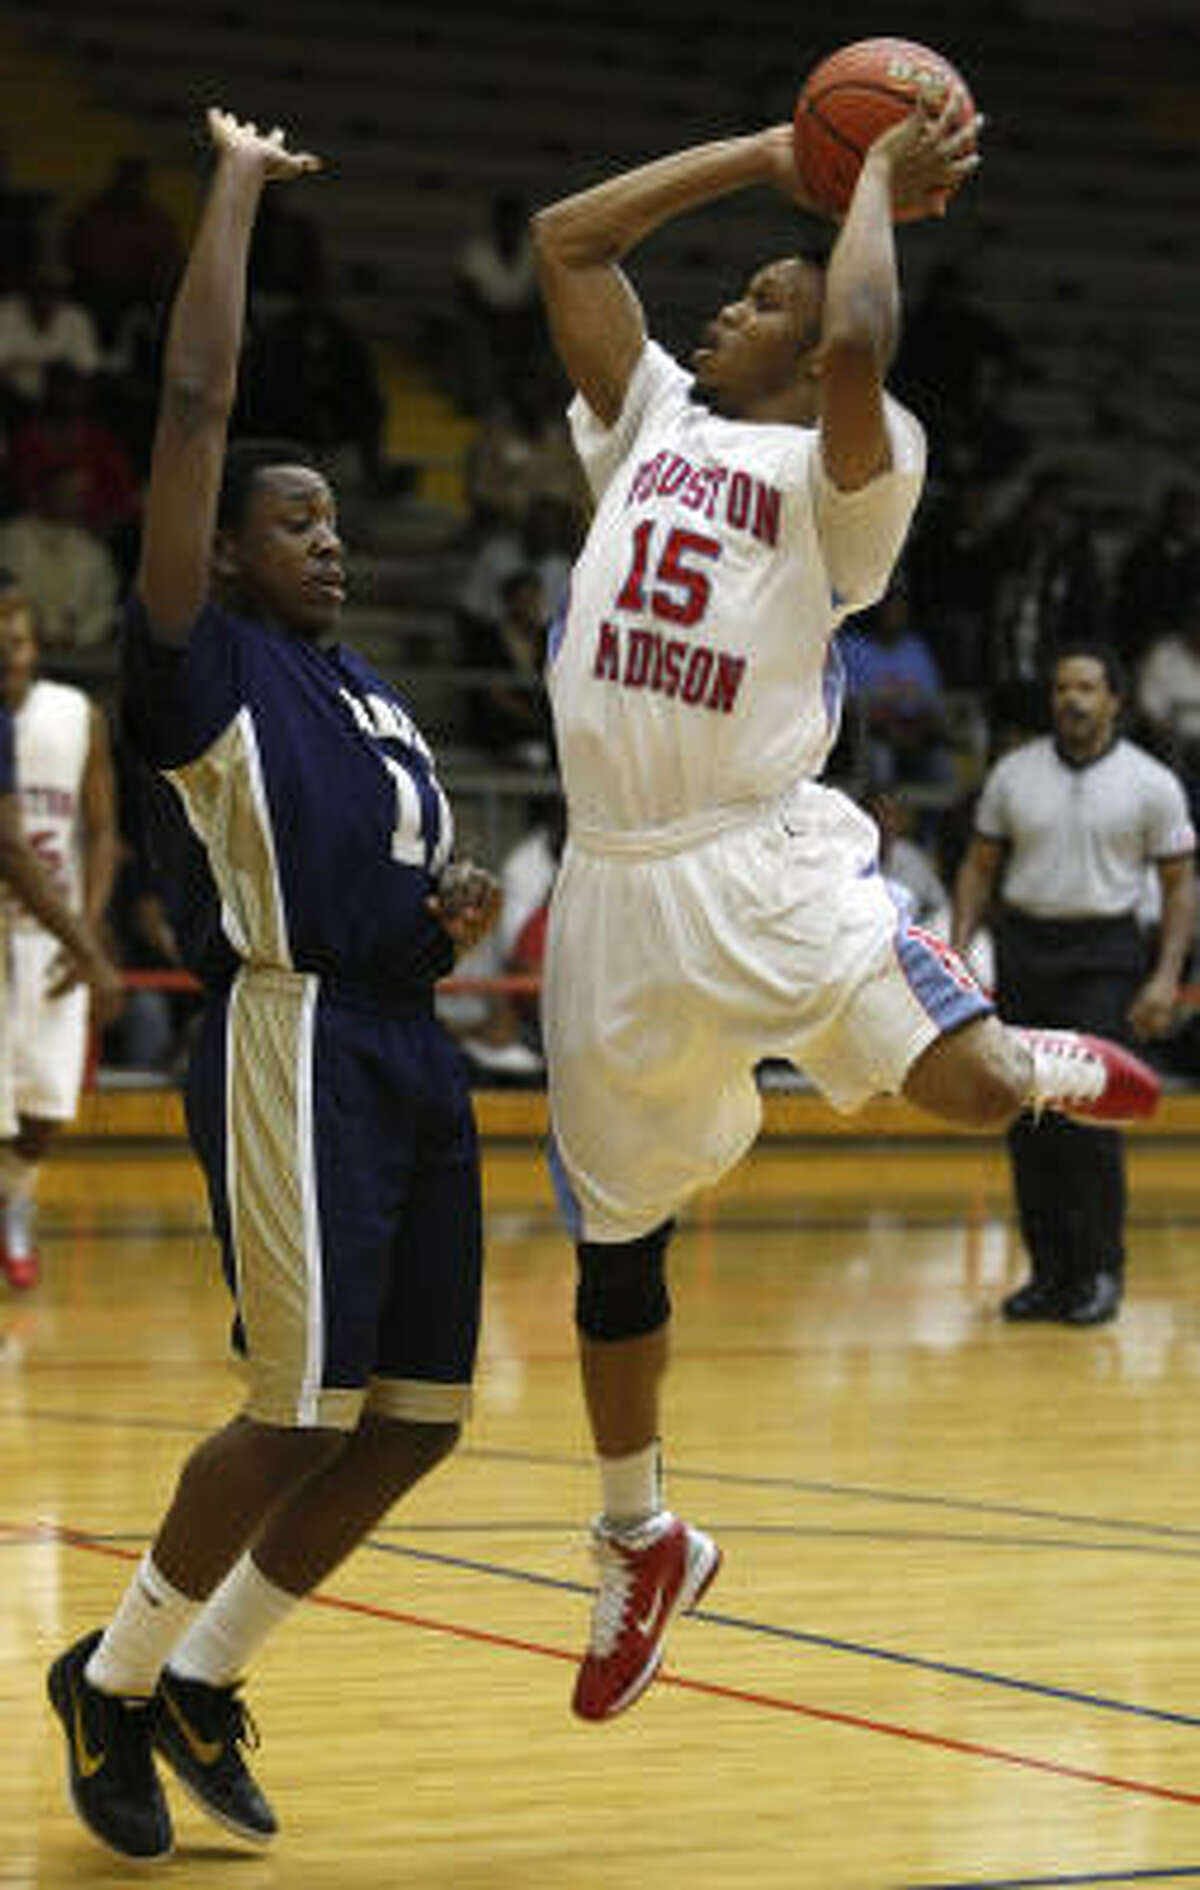 Madison's Daniel Wilson shoots over Nimitz's Stephen Williams during the first quarter.